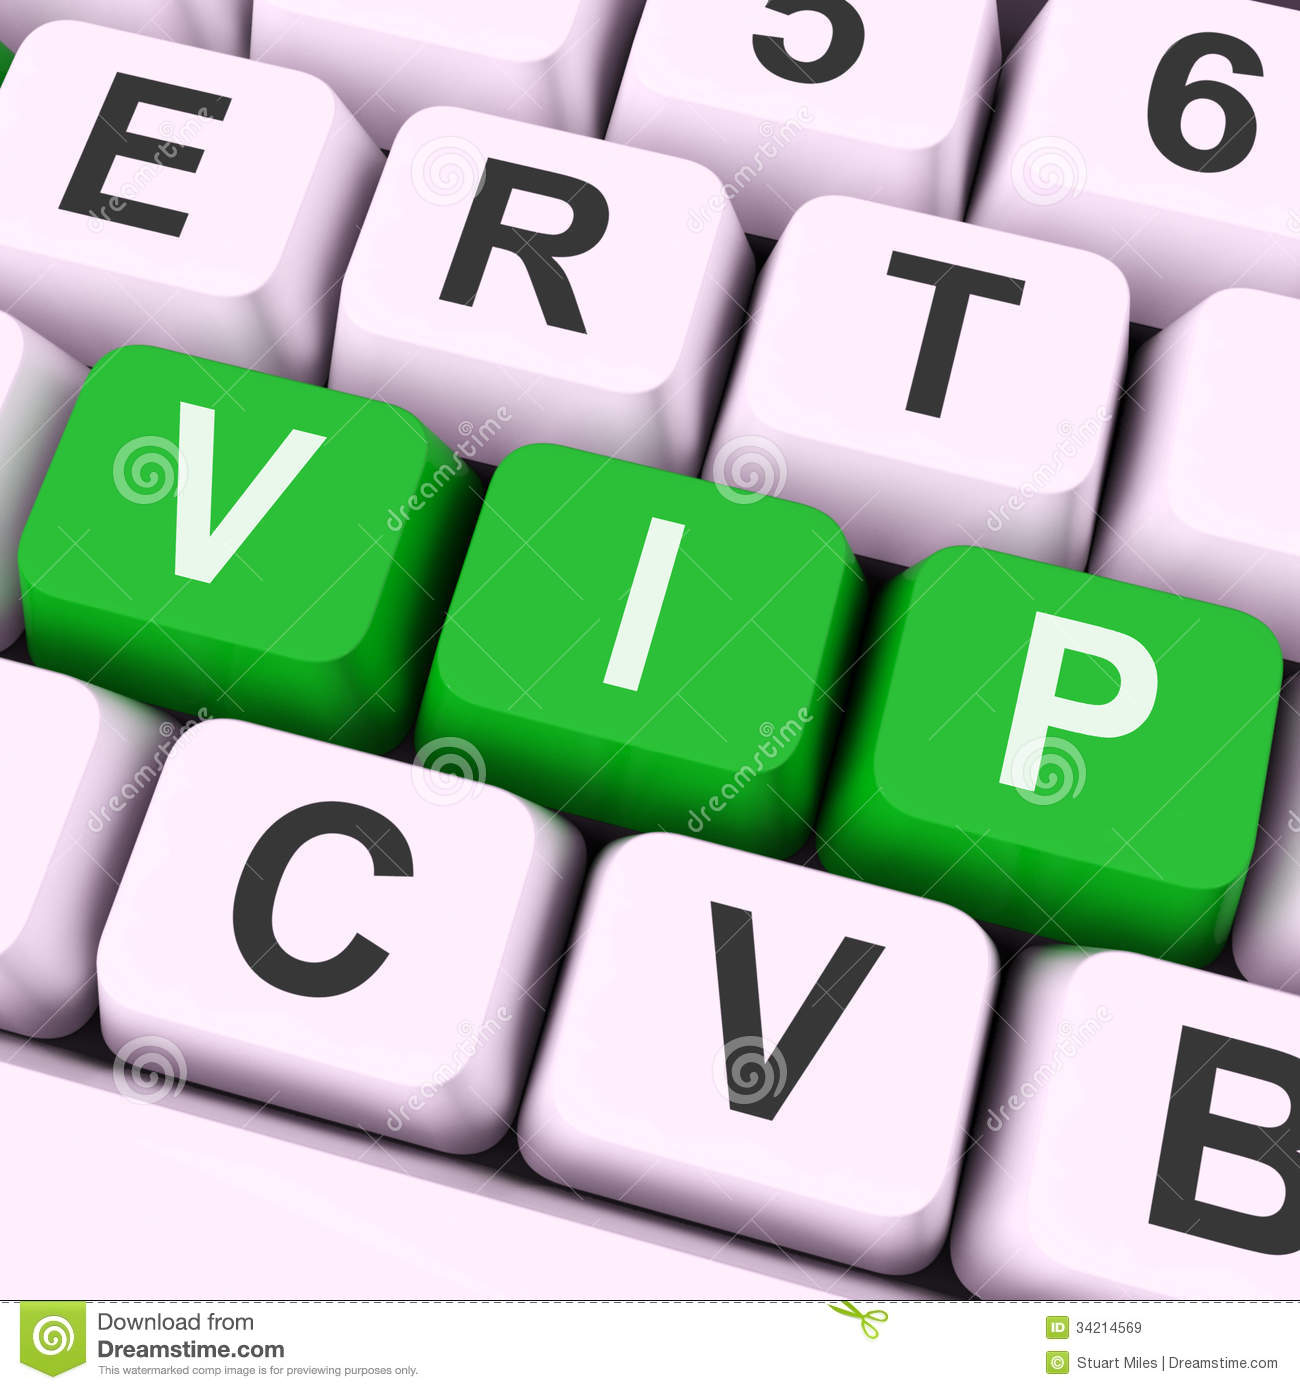 Vip Key Means Dignitary Or Very Important Person Stock